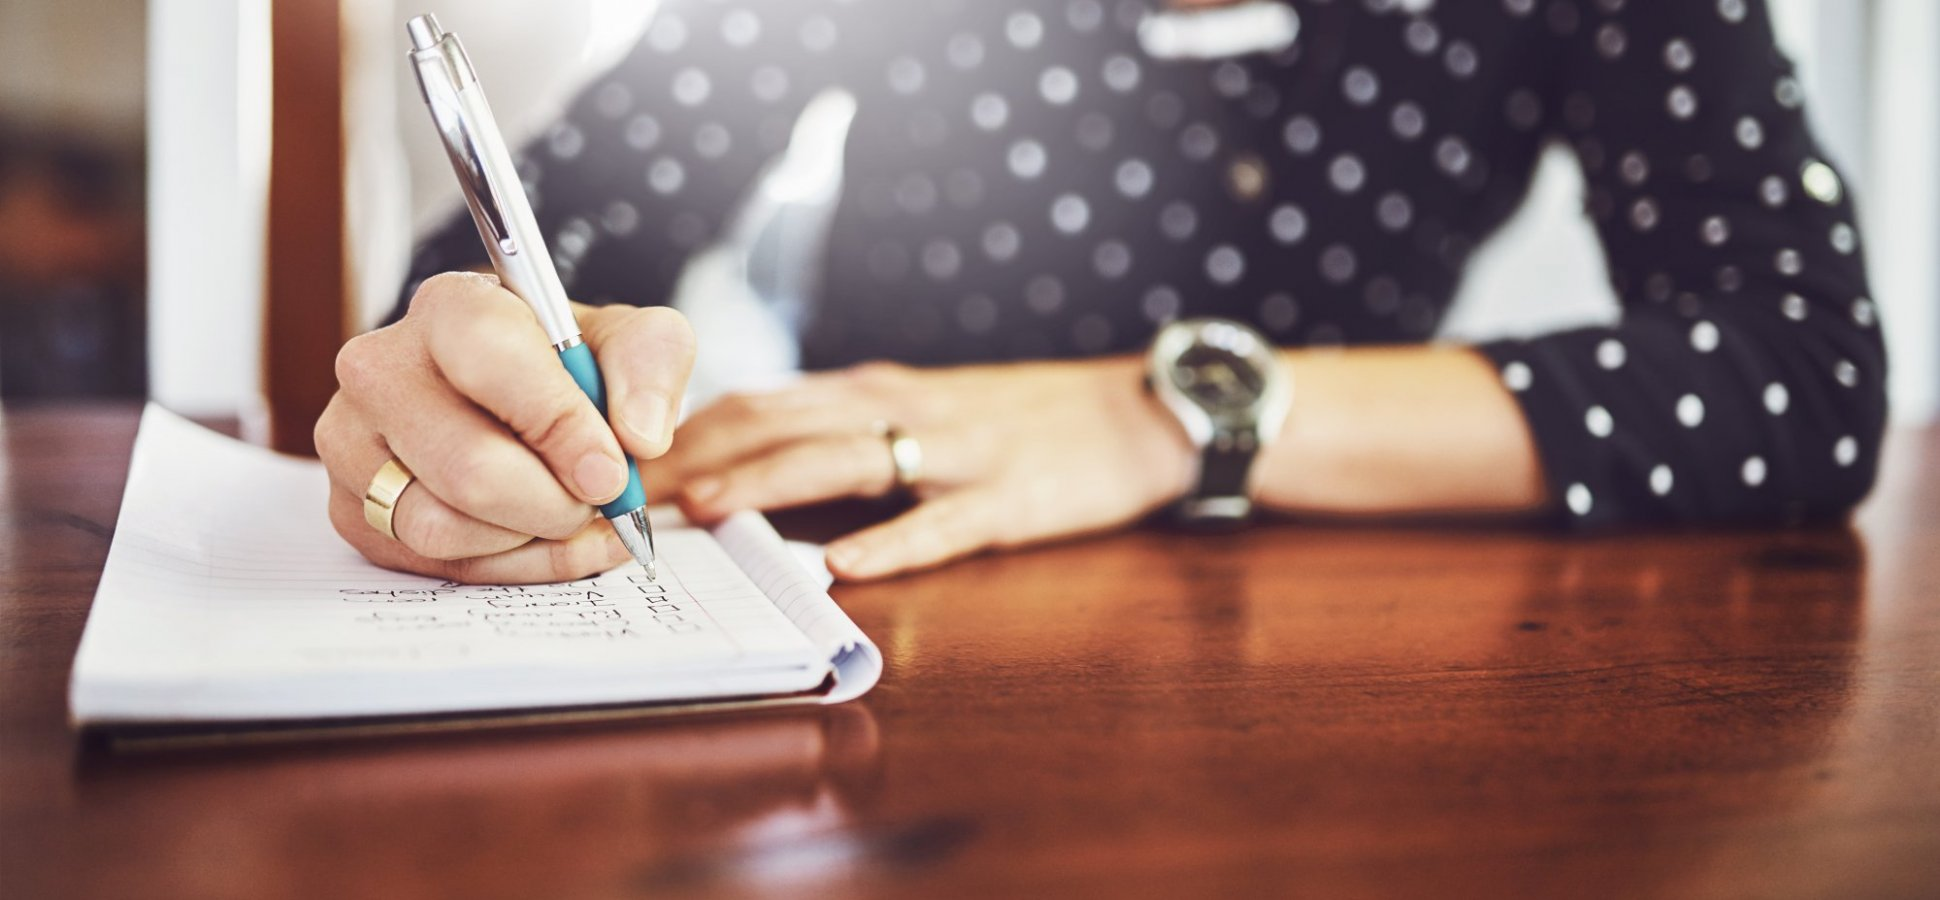 Here's Why You Need to Slash Your To-Do List in Half